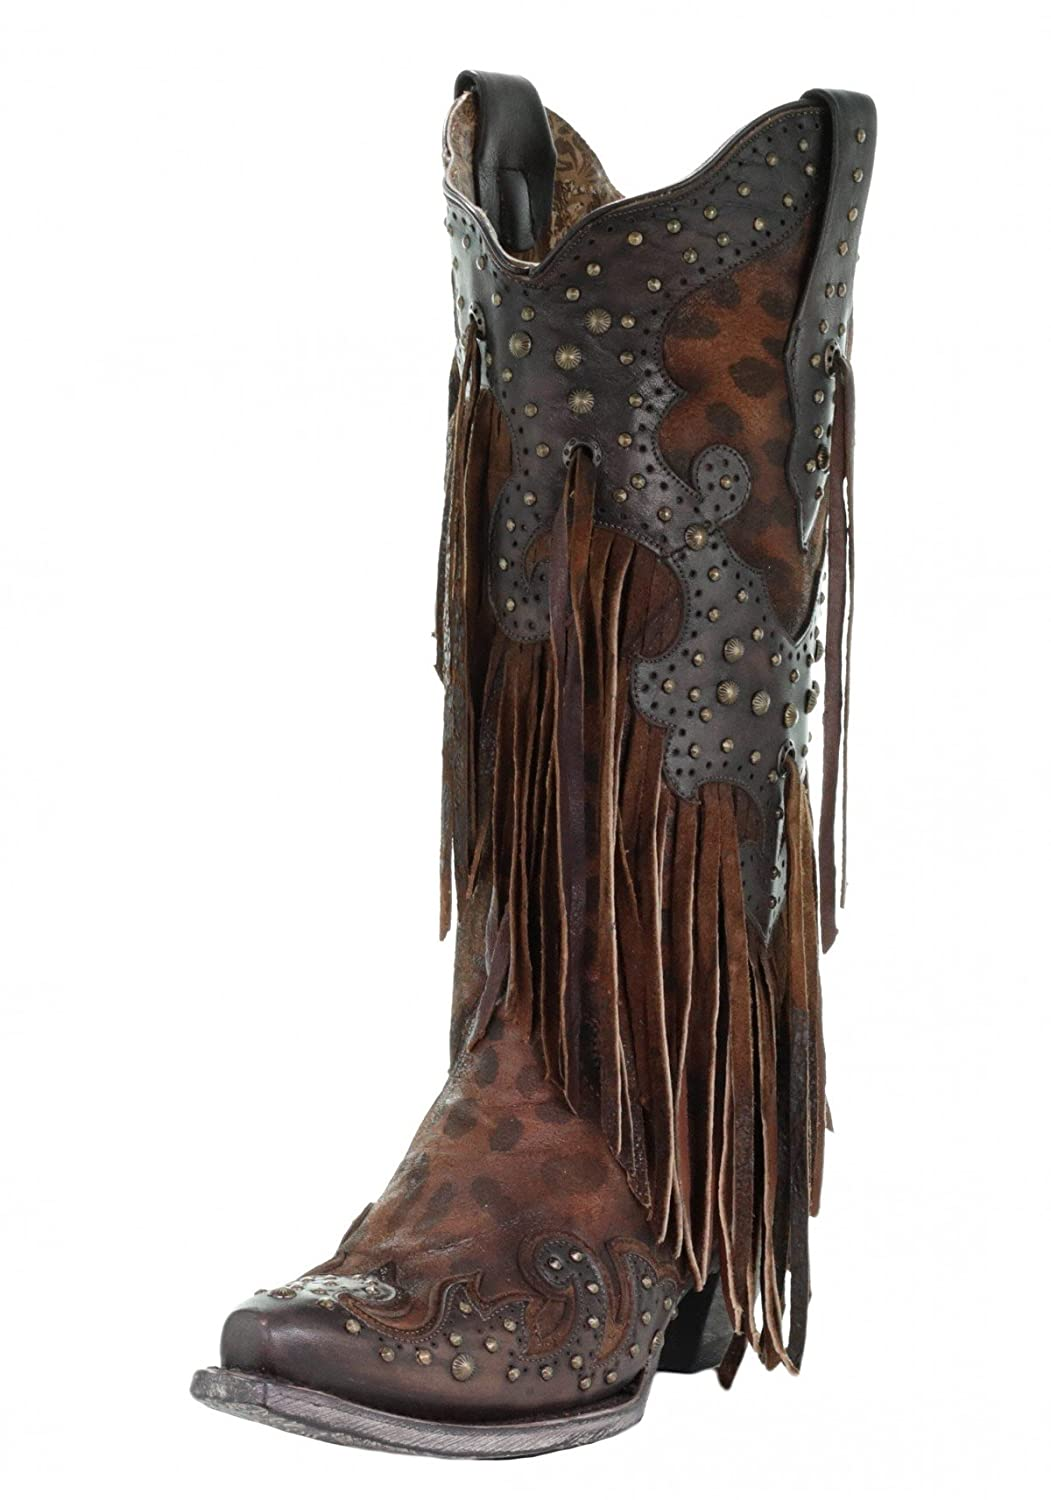 CORRAL A3618 Brown Leopard Fringe and Studs Boots B07CQTTWZ7 9 B(M) US